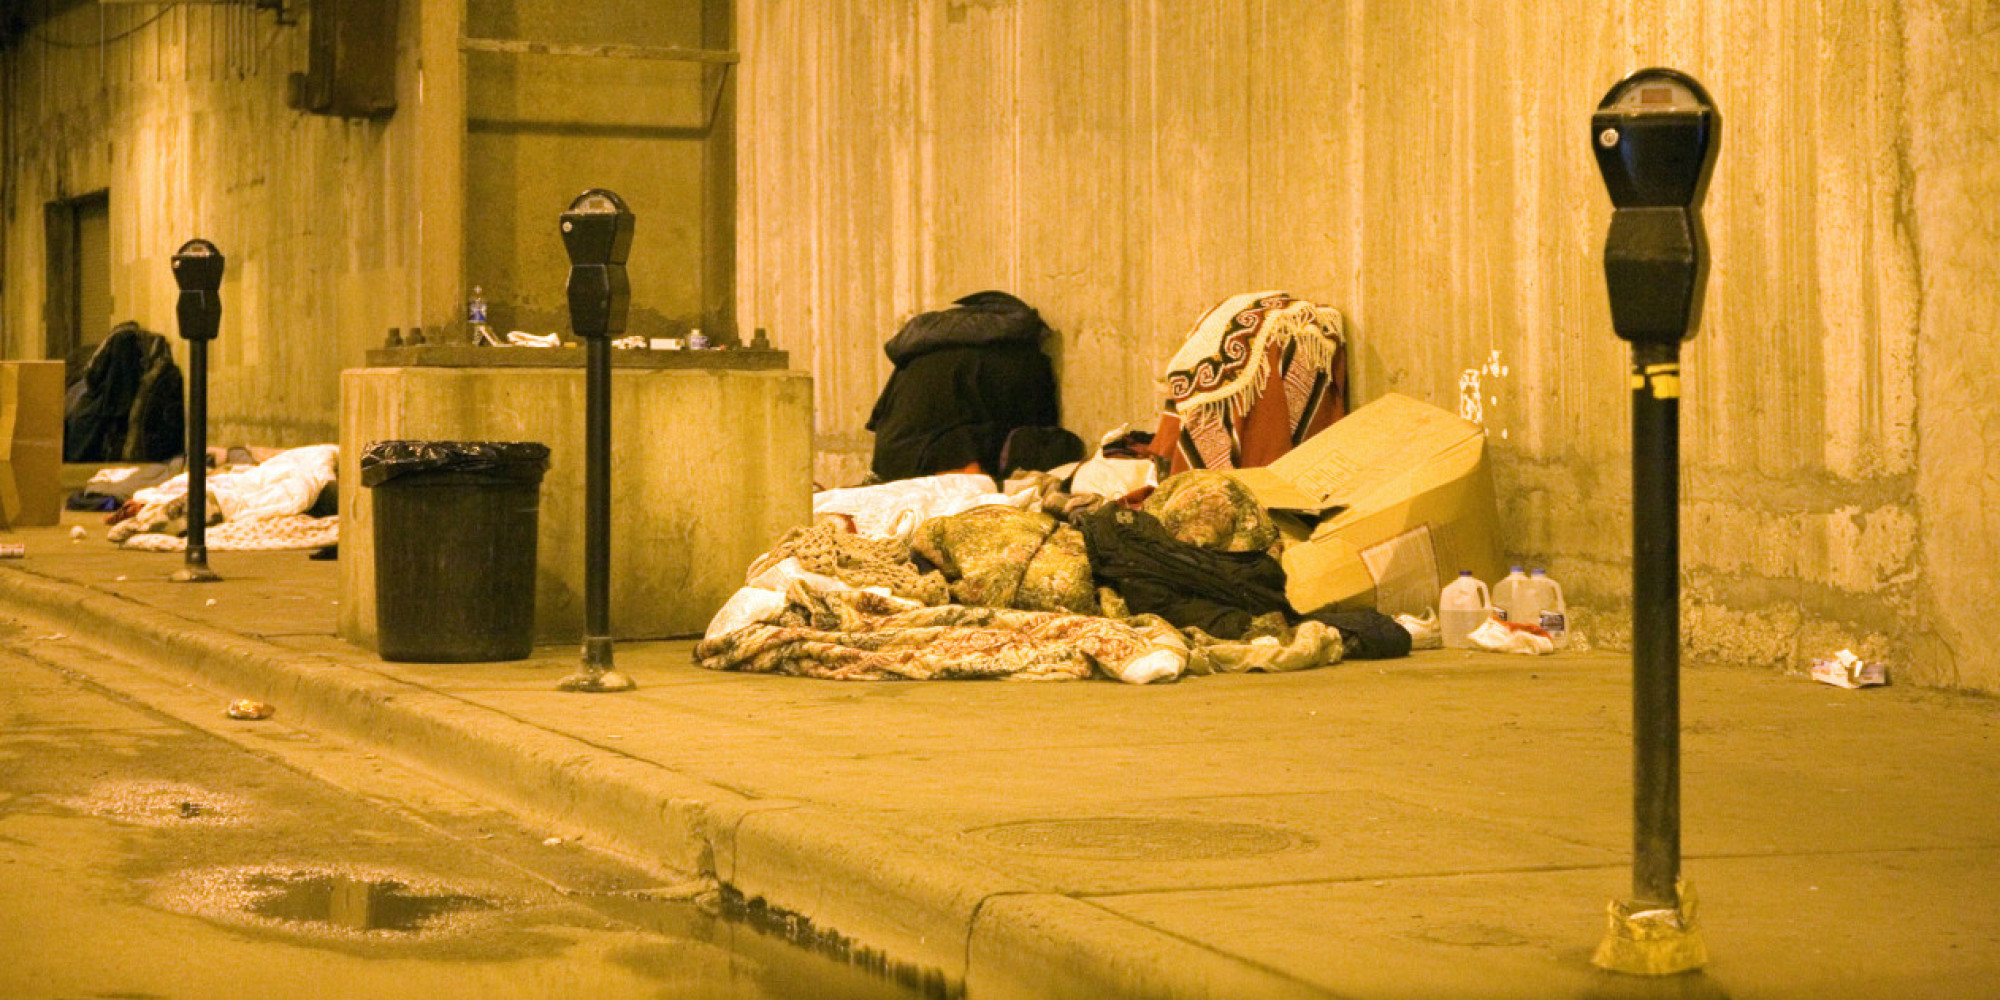 causes of homelessness in canada The causes of homelessness in later life: findings from a 3-nation study journal  of gerontology: social sciences, b 60(3): s152-s159 crossref.